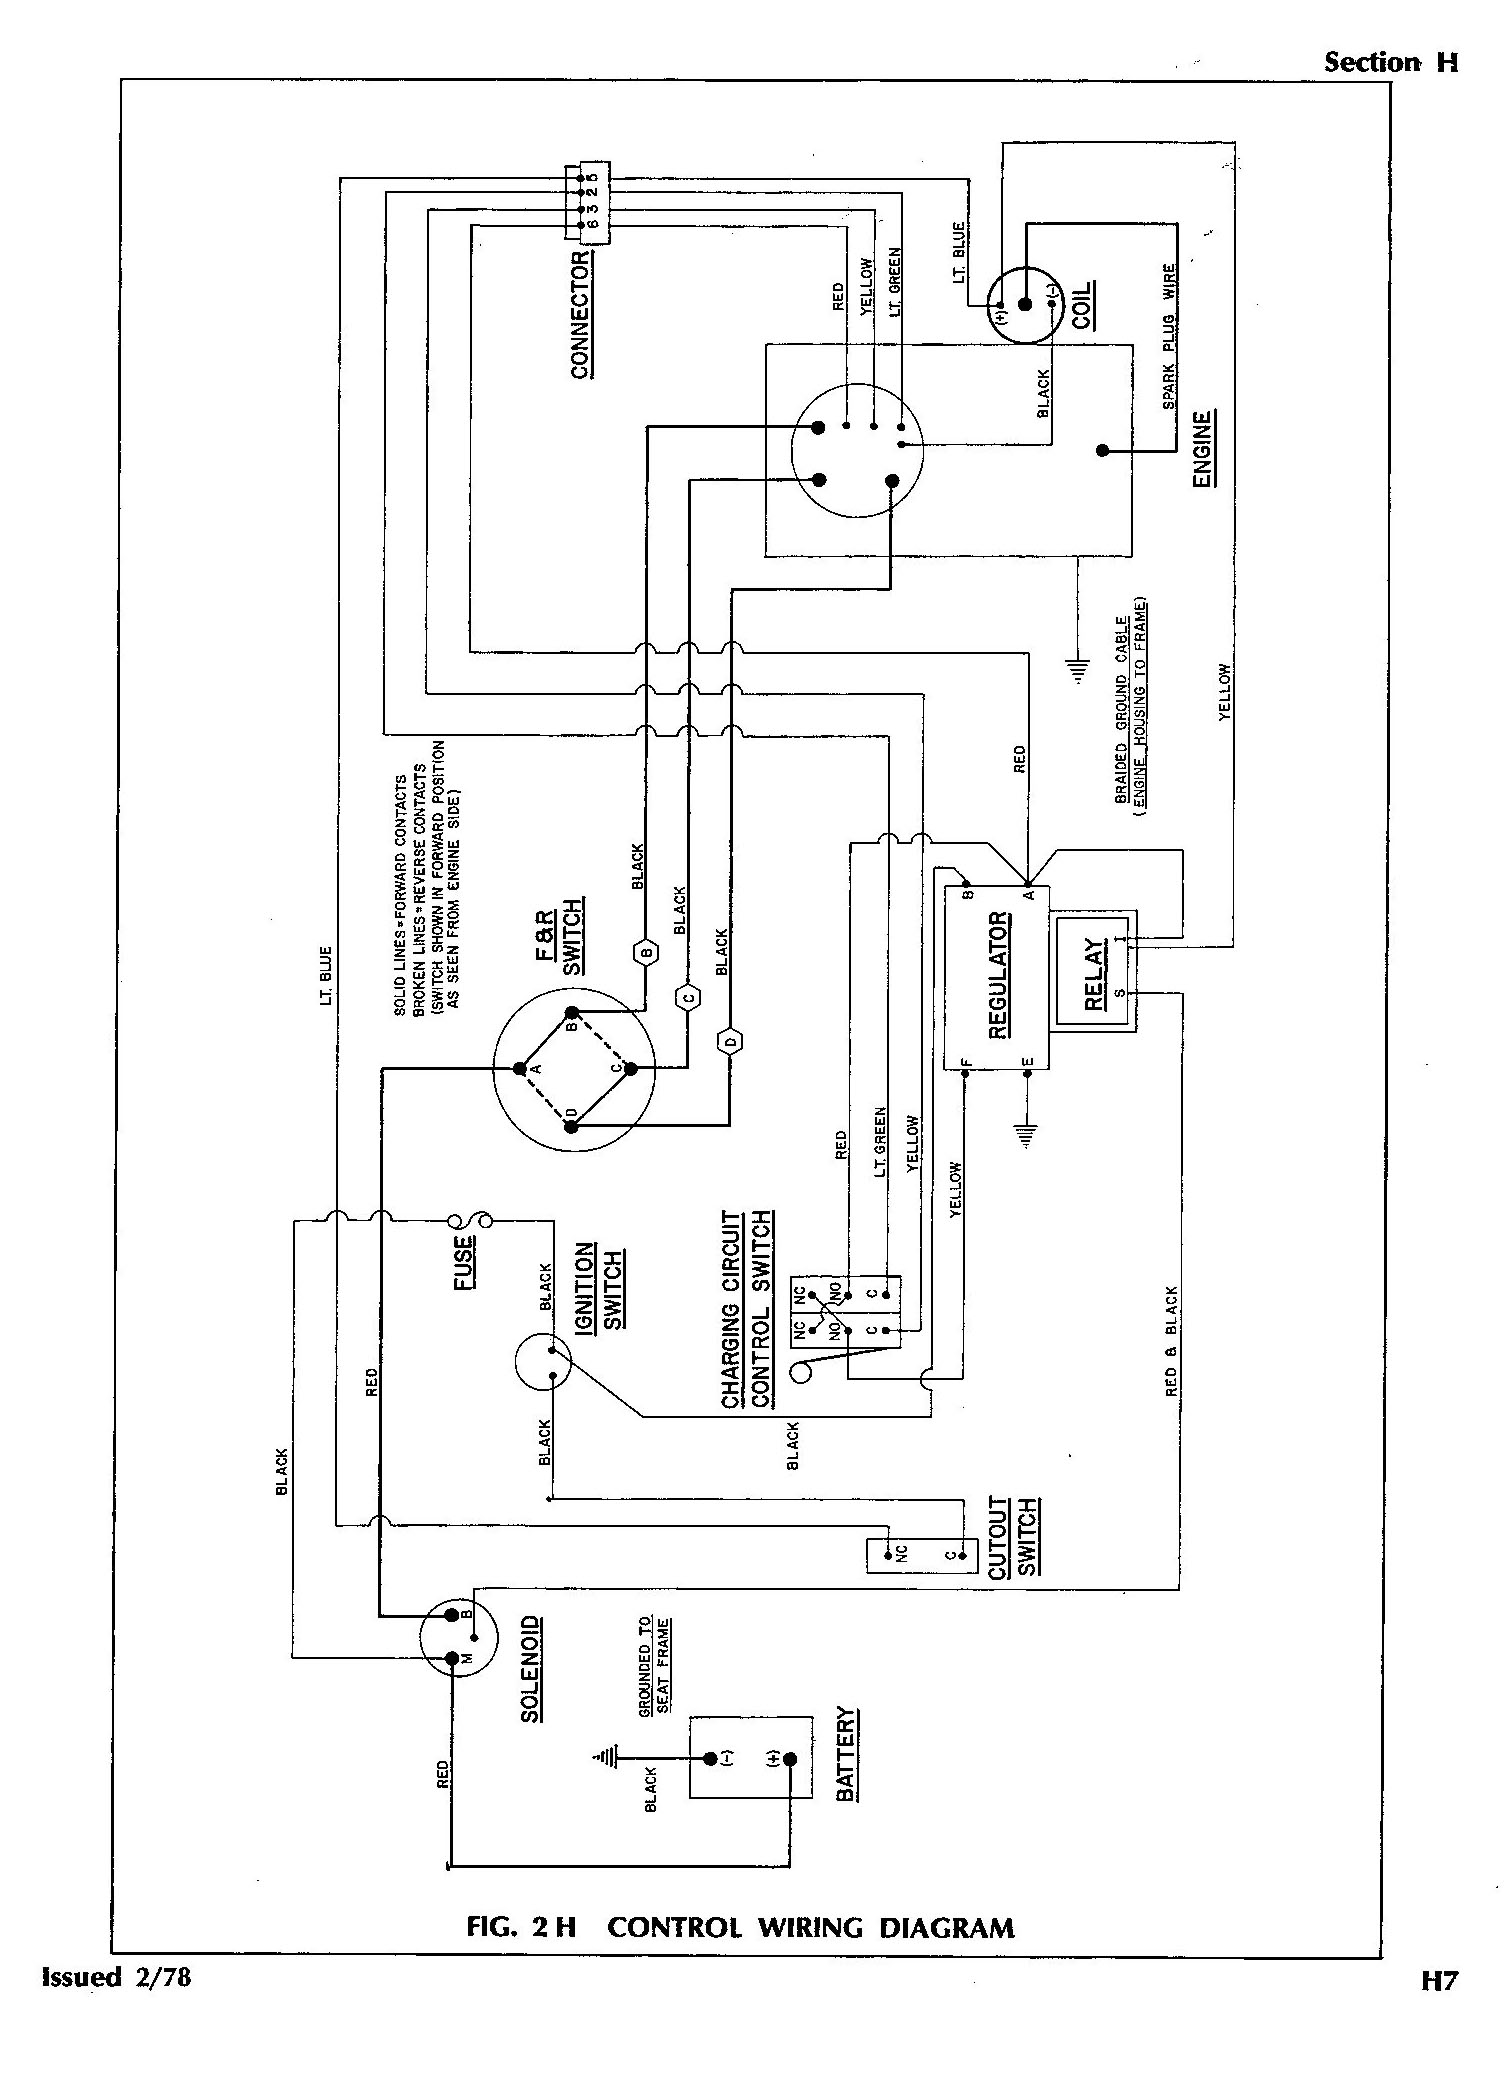 81 Ezgo Marathon Golf Cart Wiring Diagram, 81, Get Free